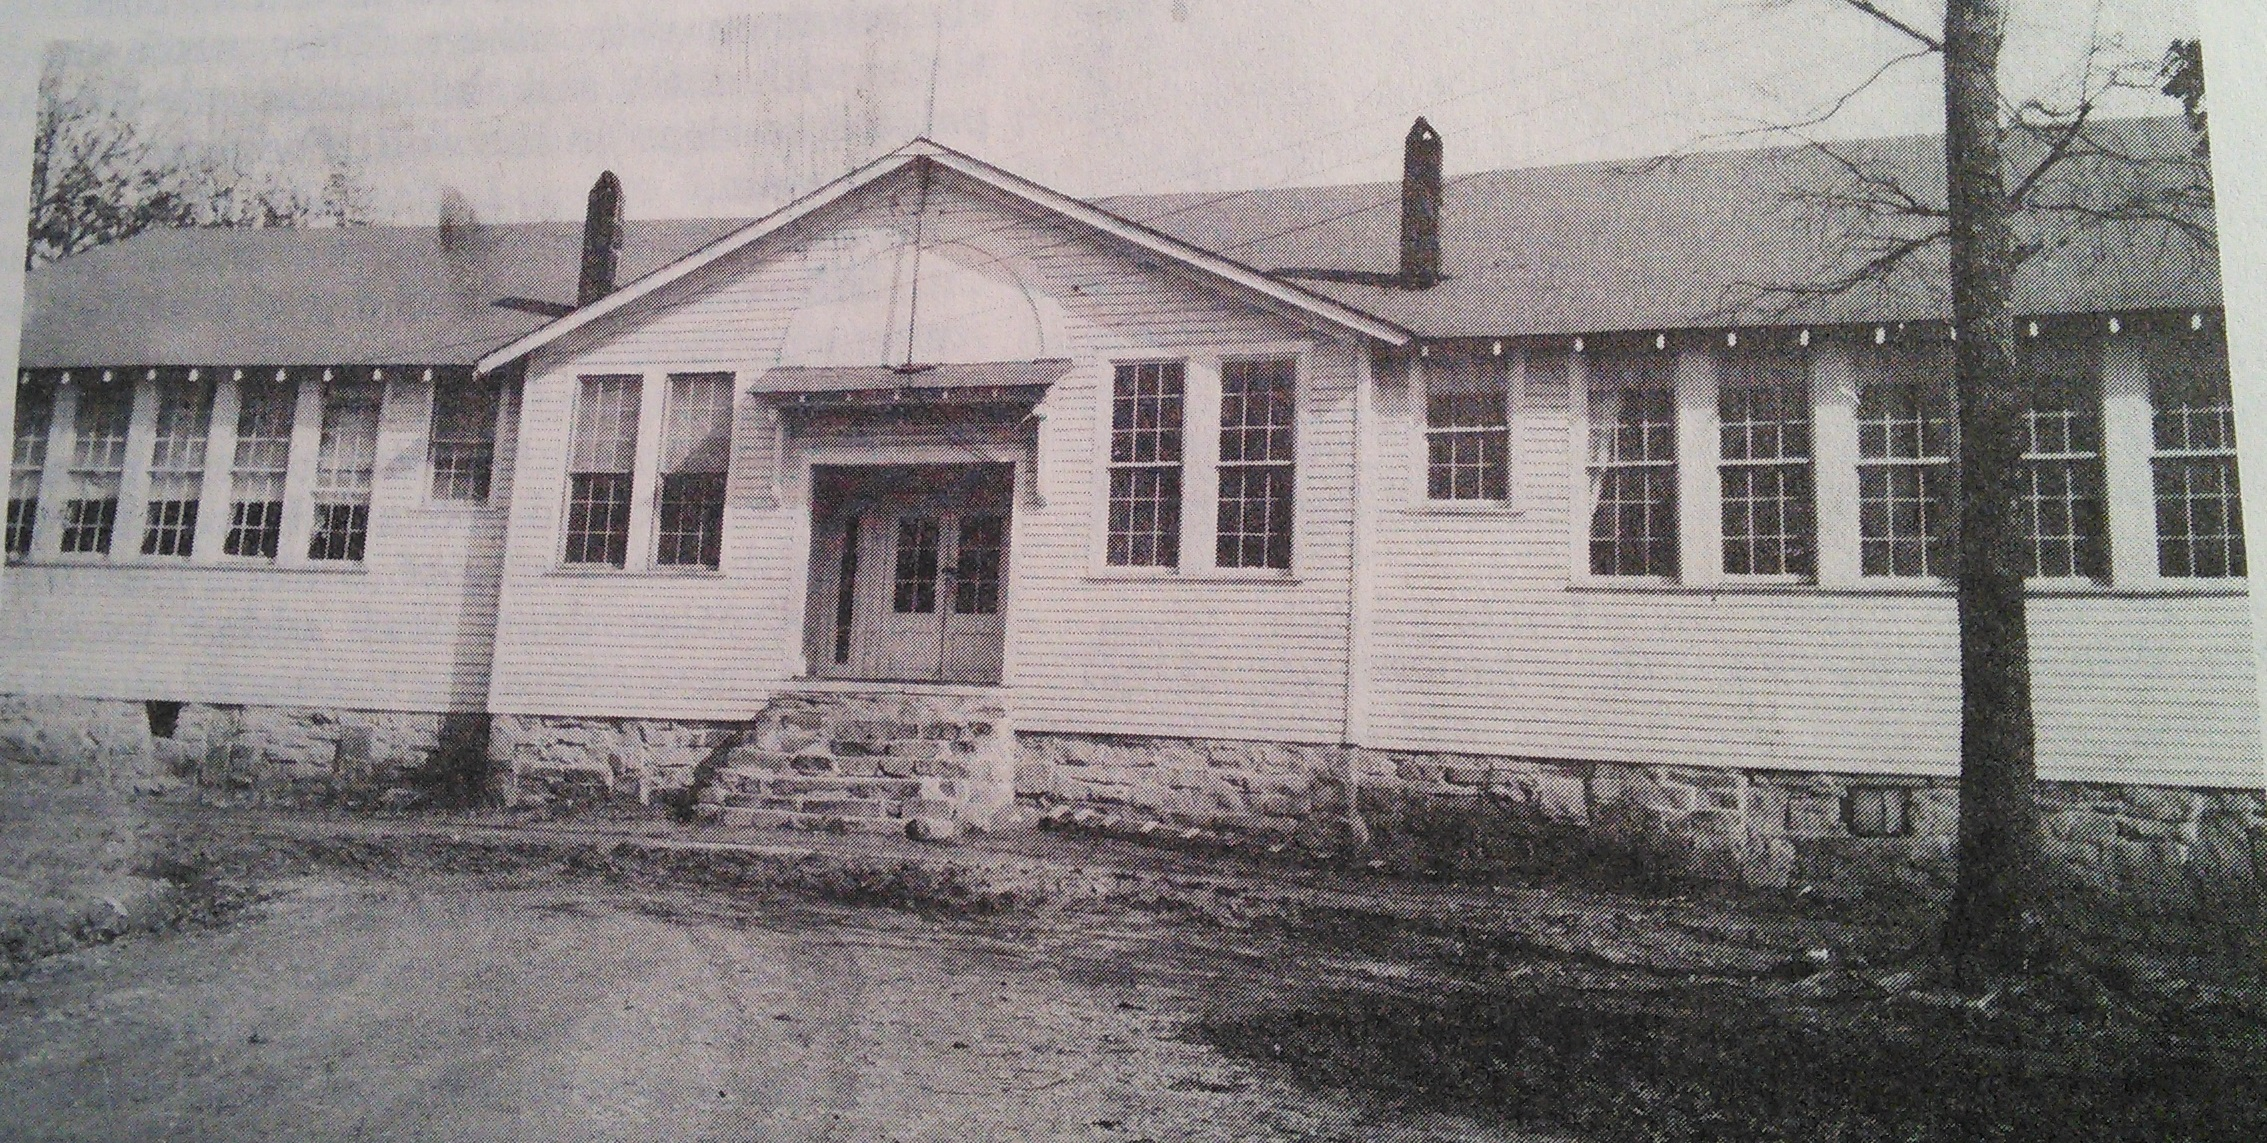 The  History of Fentress County, Tennessee , by The Fentress County Historical Society, 1987 lists this building as the Clarkrange Elementary and High School 1926 - 1952.  However, those dates do not correspond to the building dates given elsewhere in that book, and students of that day recognize this building as the Elementary school.